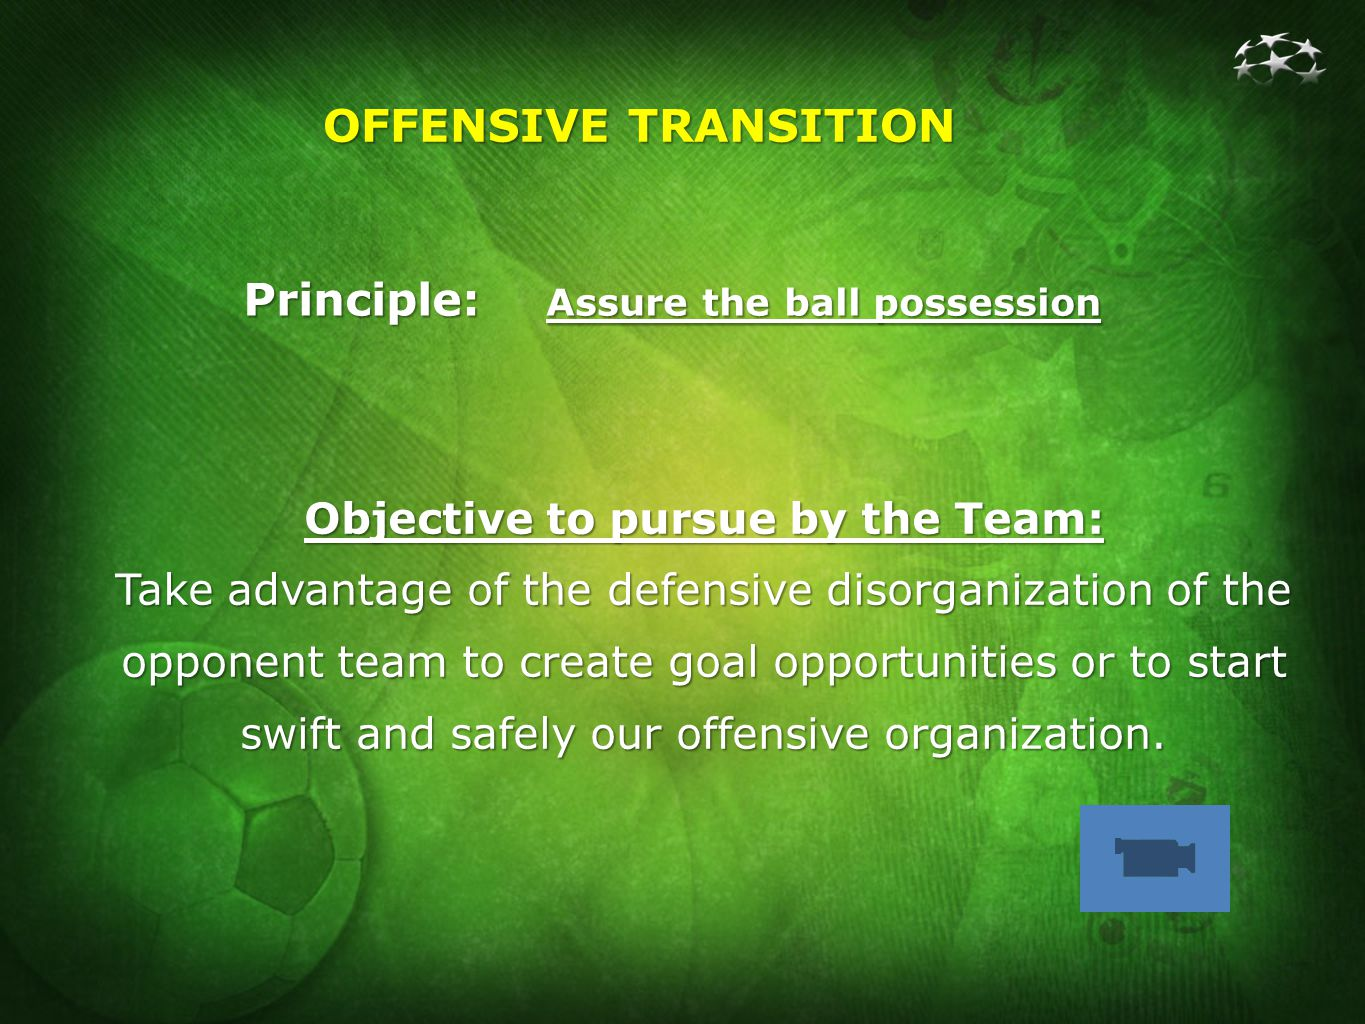 OFFENSIVE TRANSITION Principle: Assure the ball possession Objective to pursue by the Team: Take advantage of the defensive disorganization of the opponent team to create goal opportunities or to start swift and safely our offensive organization.